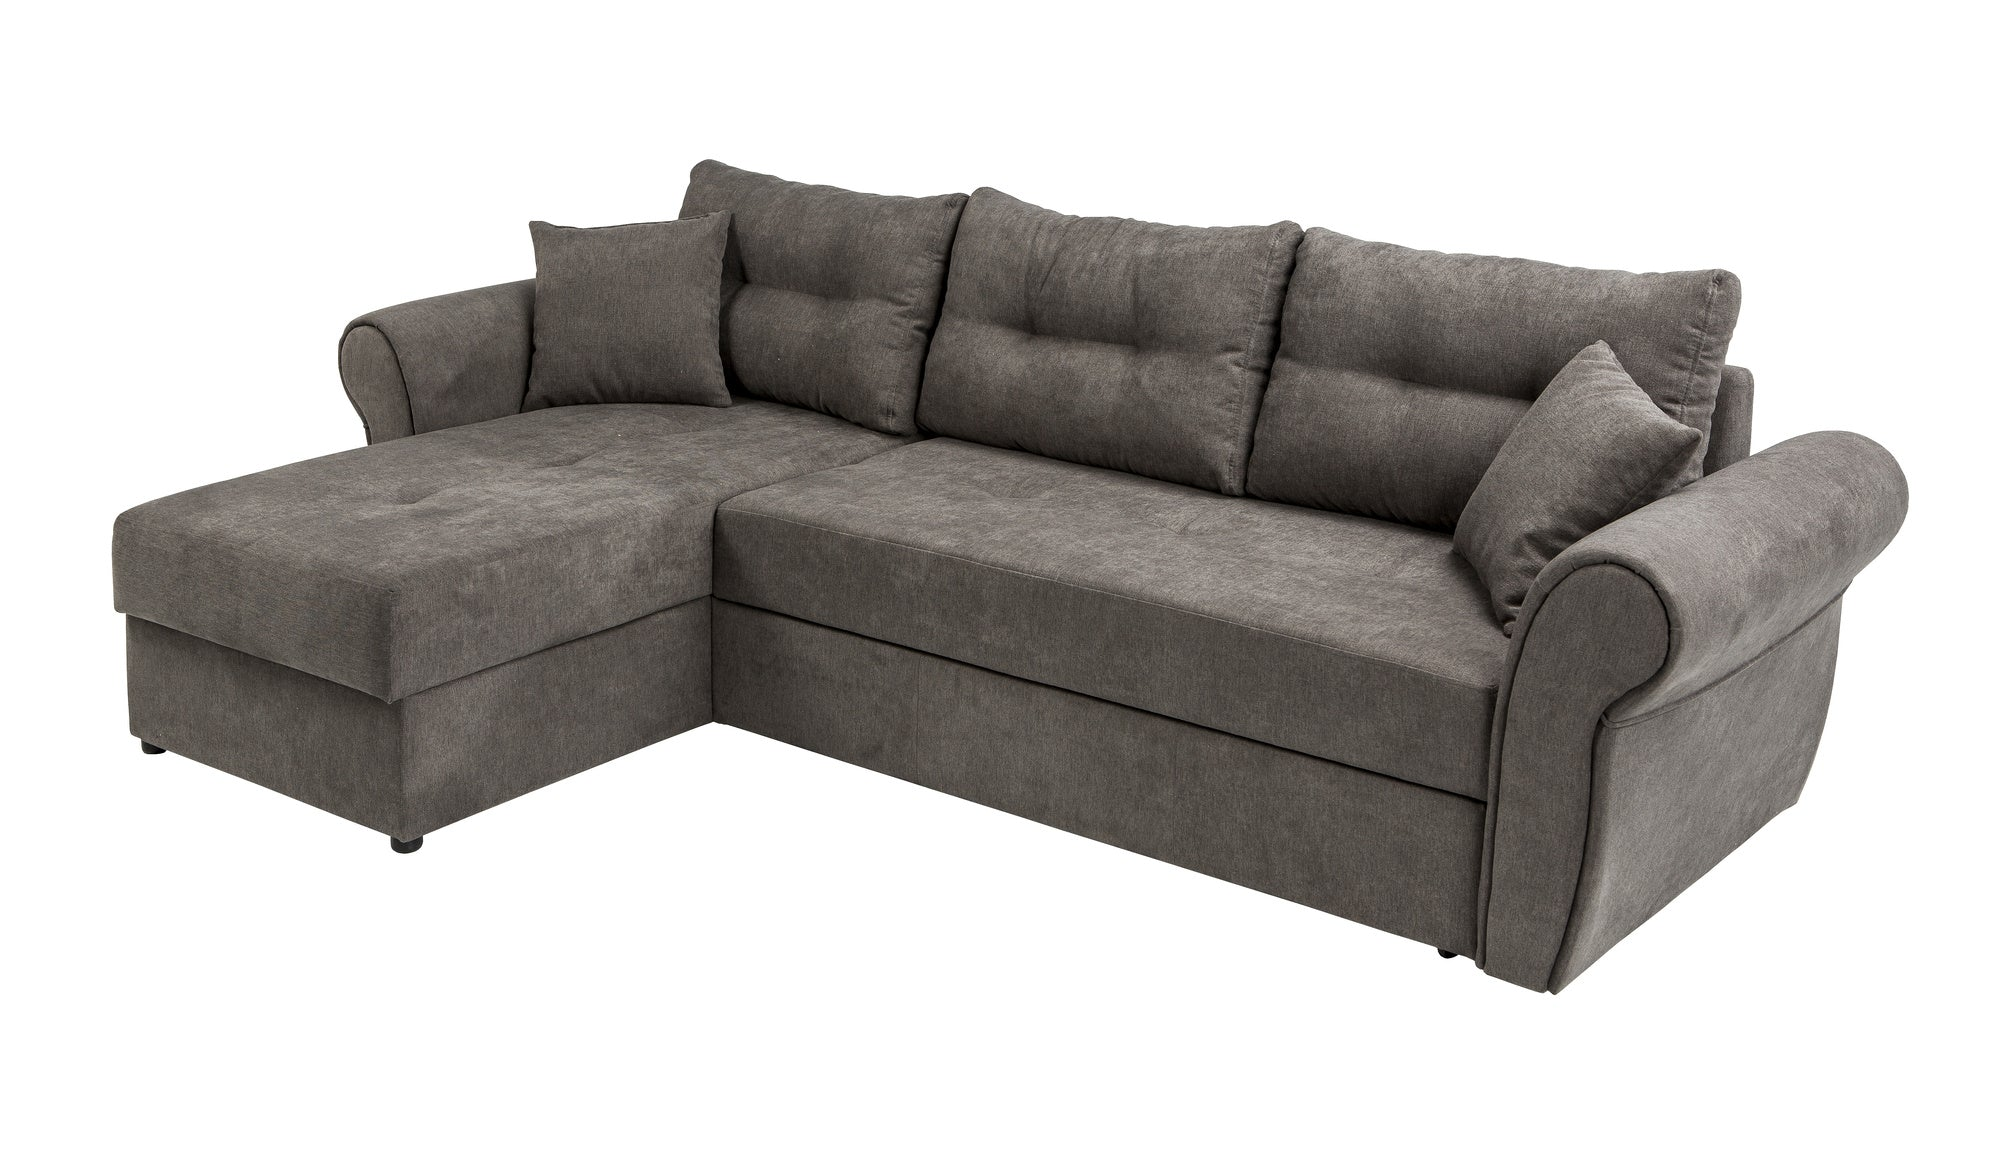 Would a Corner Sofa Suit Your Living Room Design?